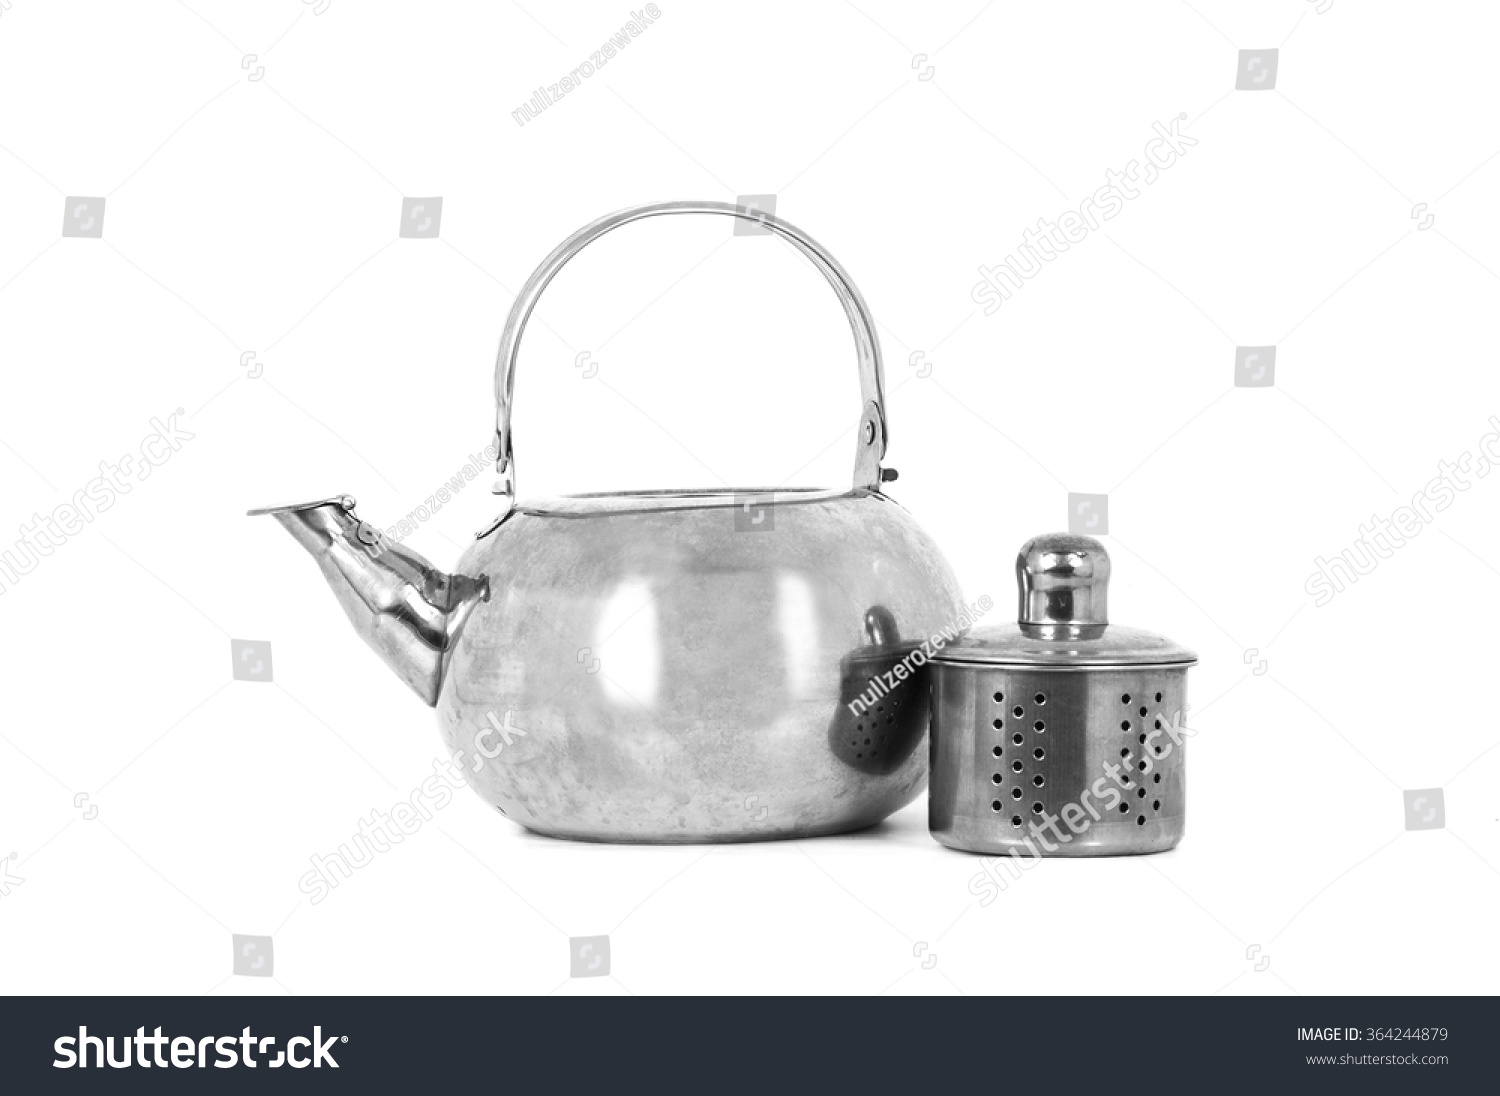 Tea Kettle With Strainer Tea Kettle With Tea Strainer Isolated On White Background